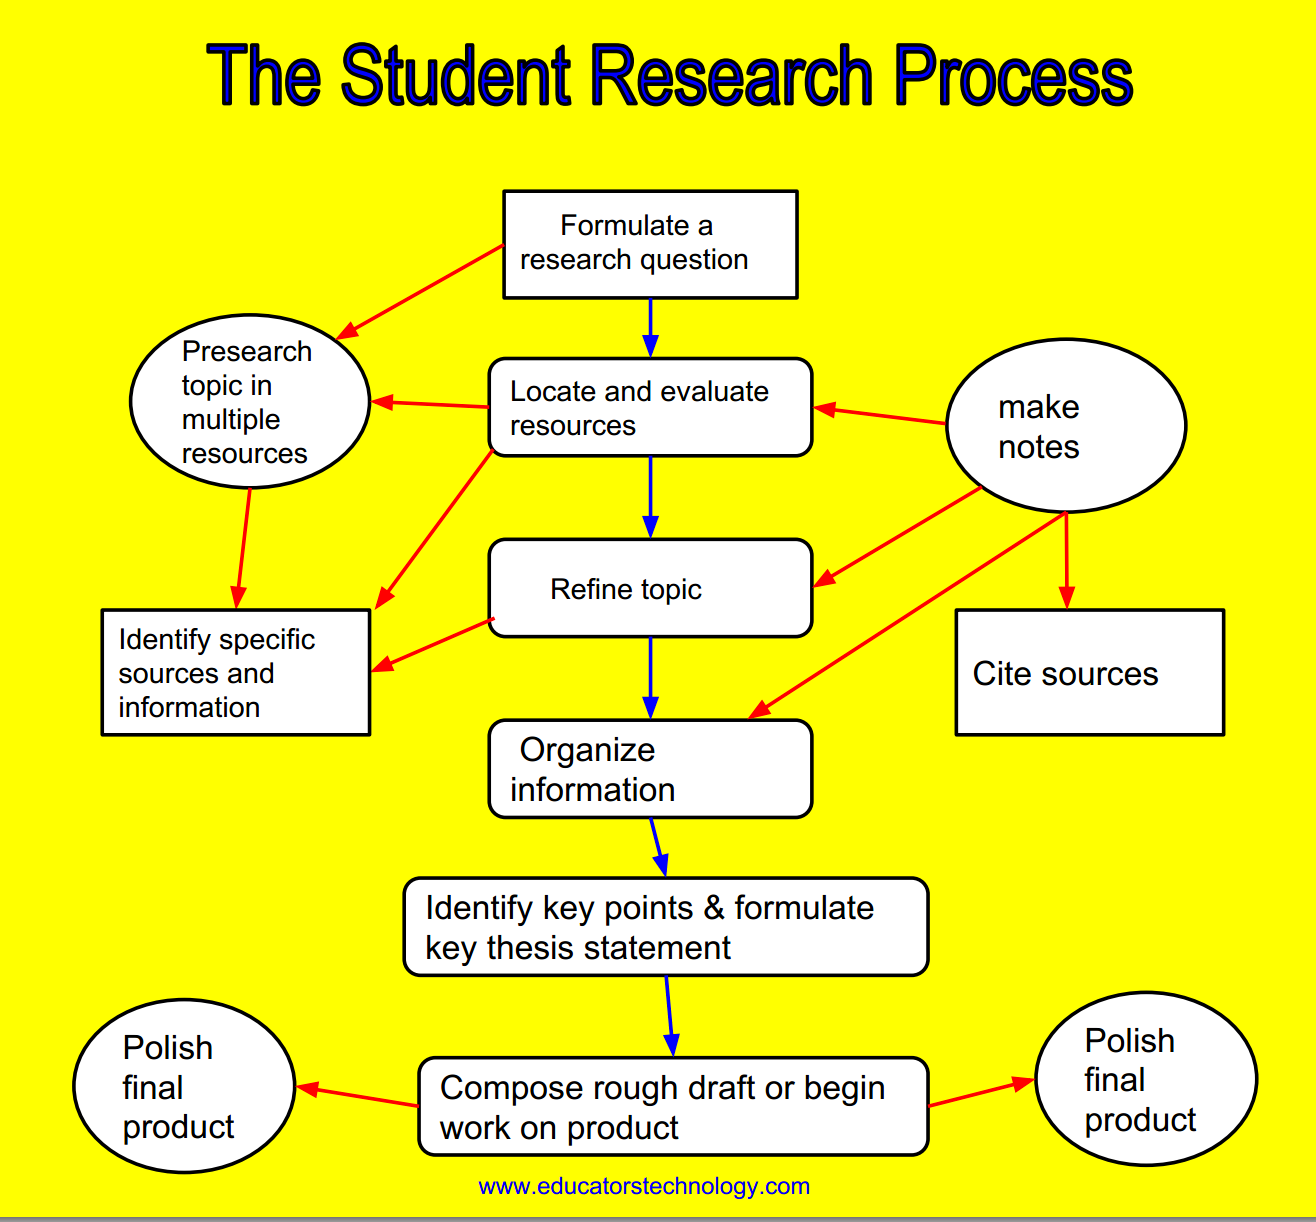 research paper on college education - Research Paper on Education ...